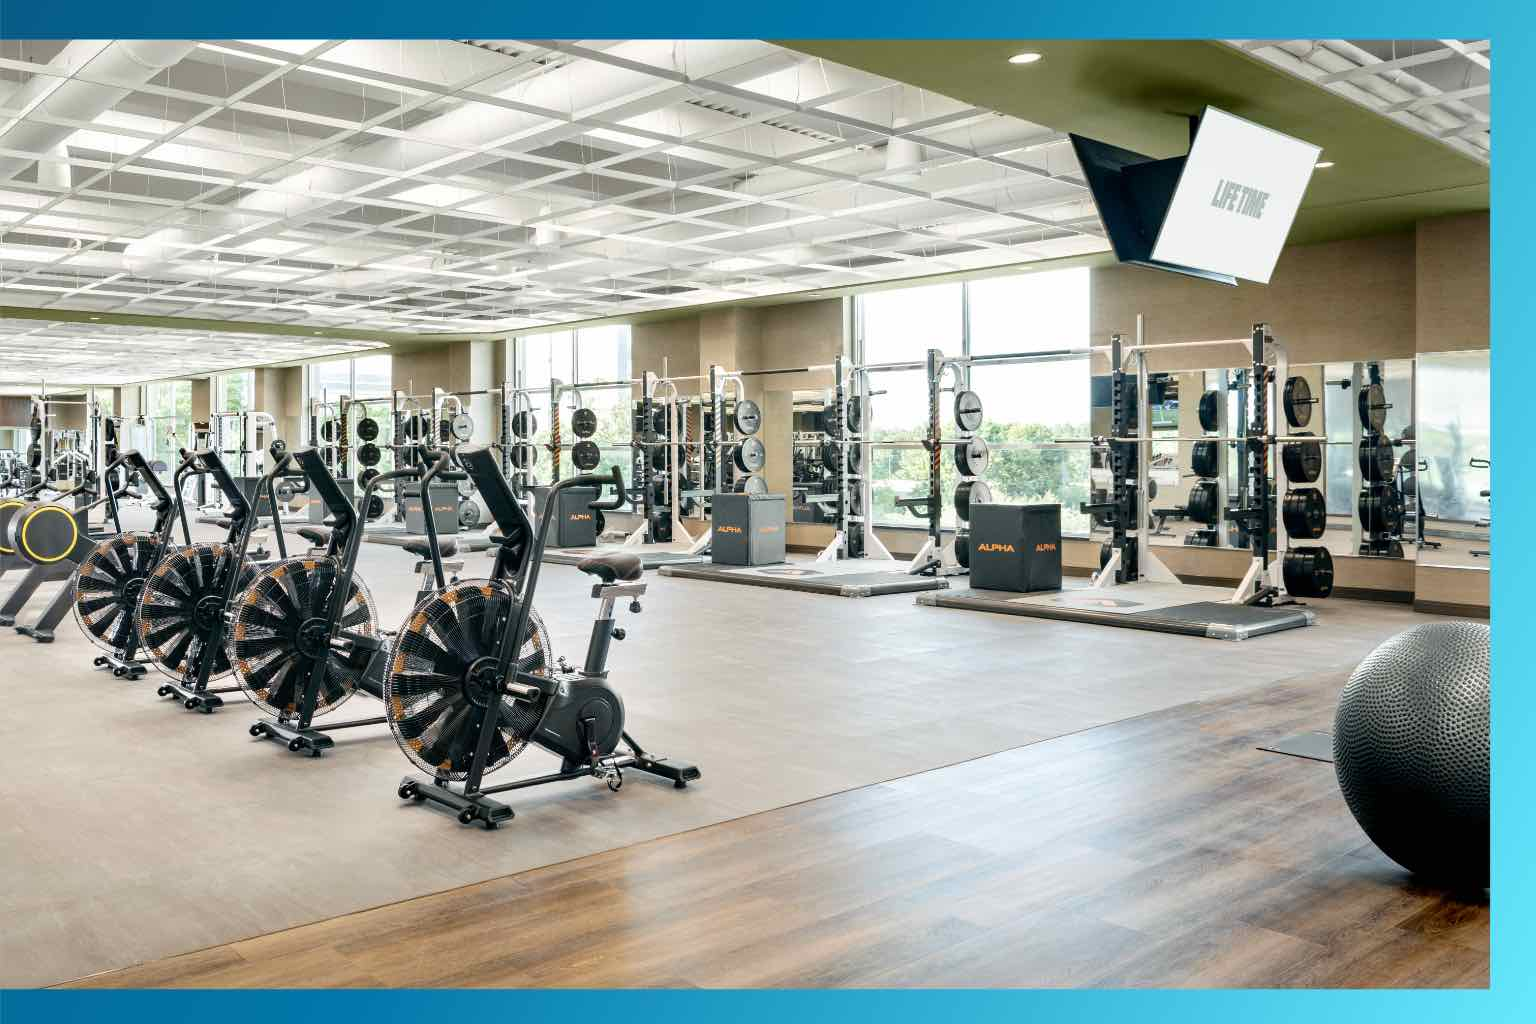 A sunlit fitness floor filled with well-spaced weight training equipment